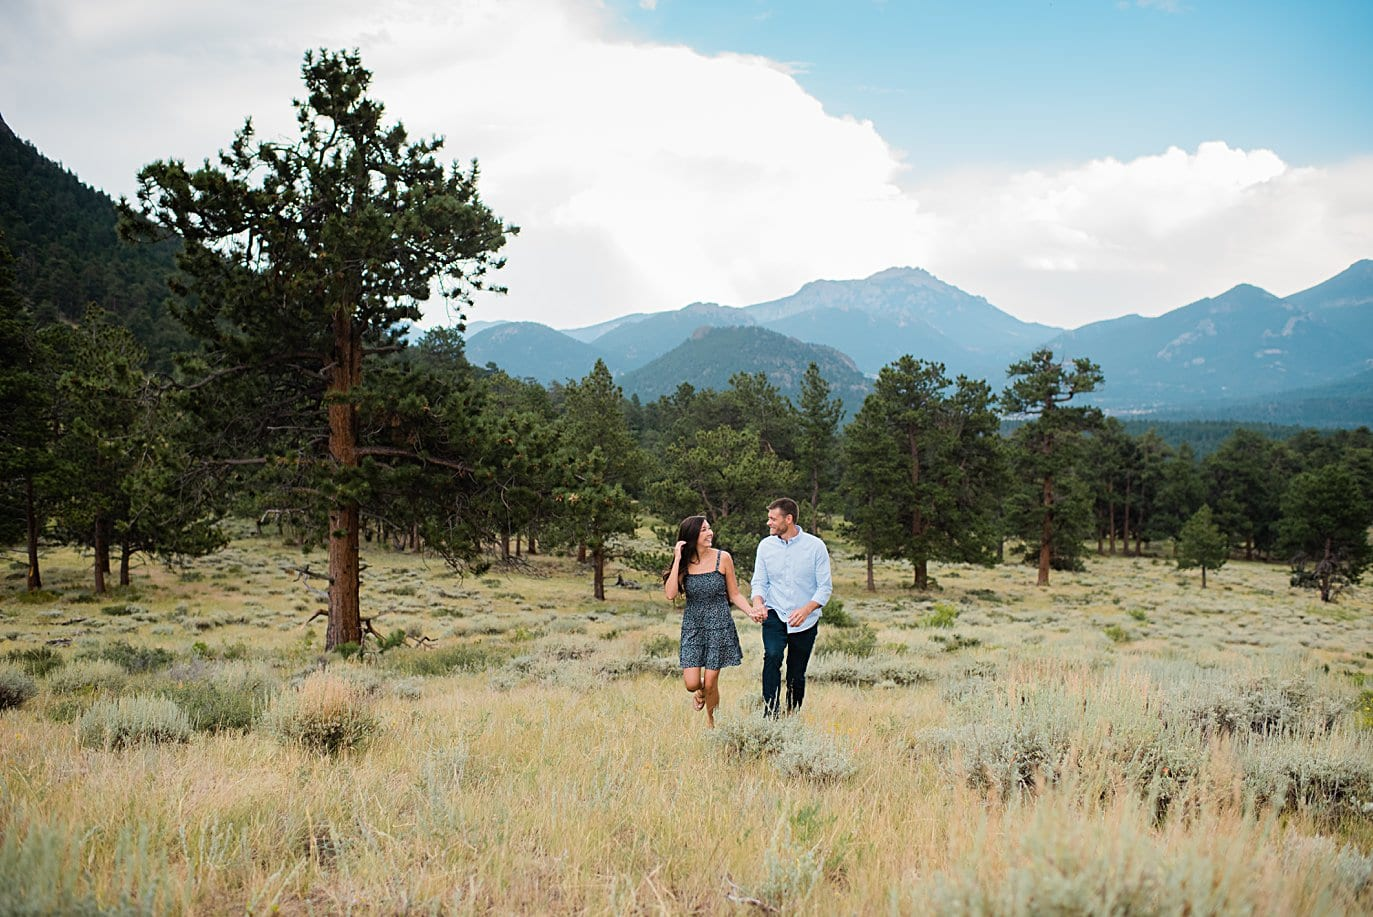 summer engagement session at 3M Curve in Rocky Mountain National Park by Estes Park engagement photographer Jennie Crate